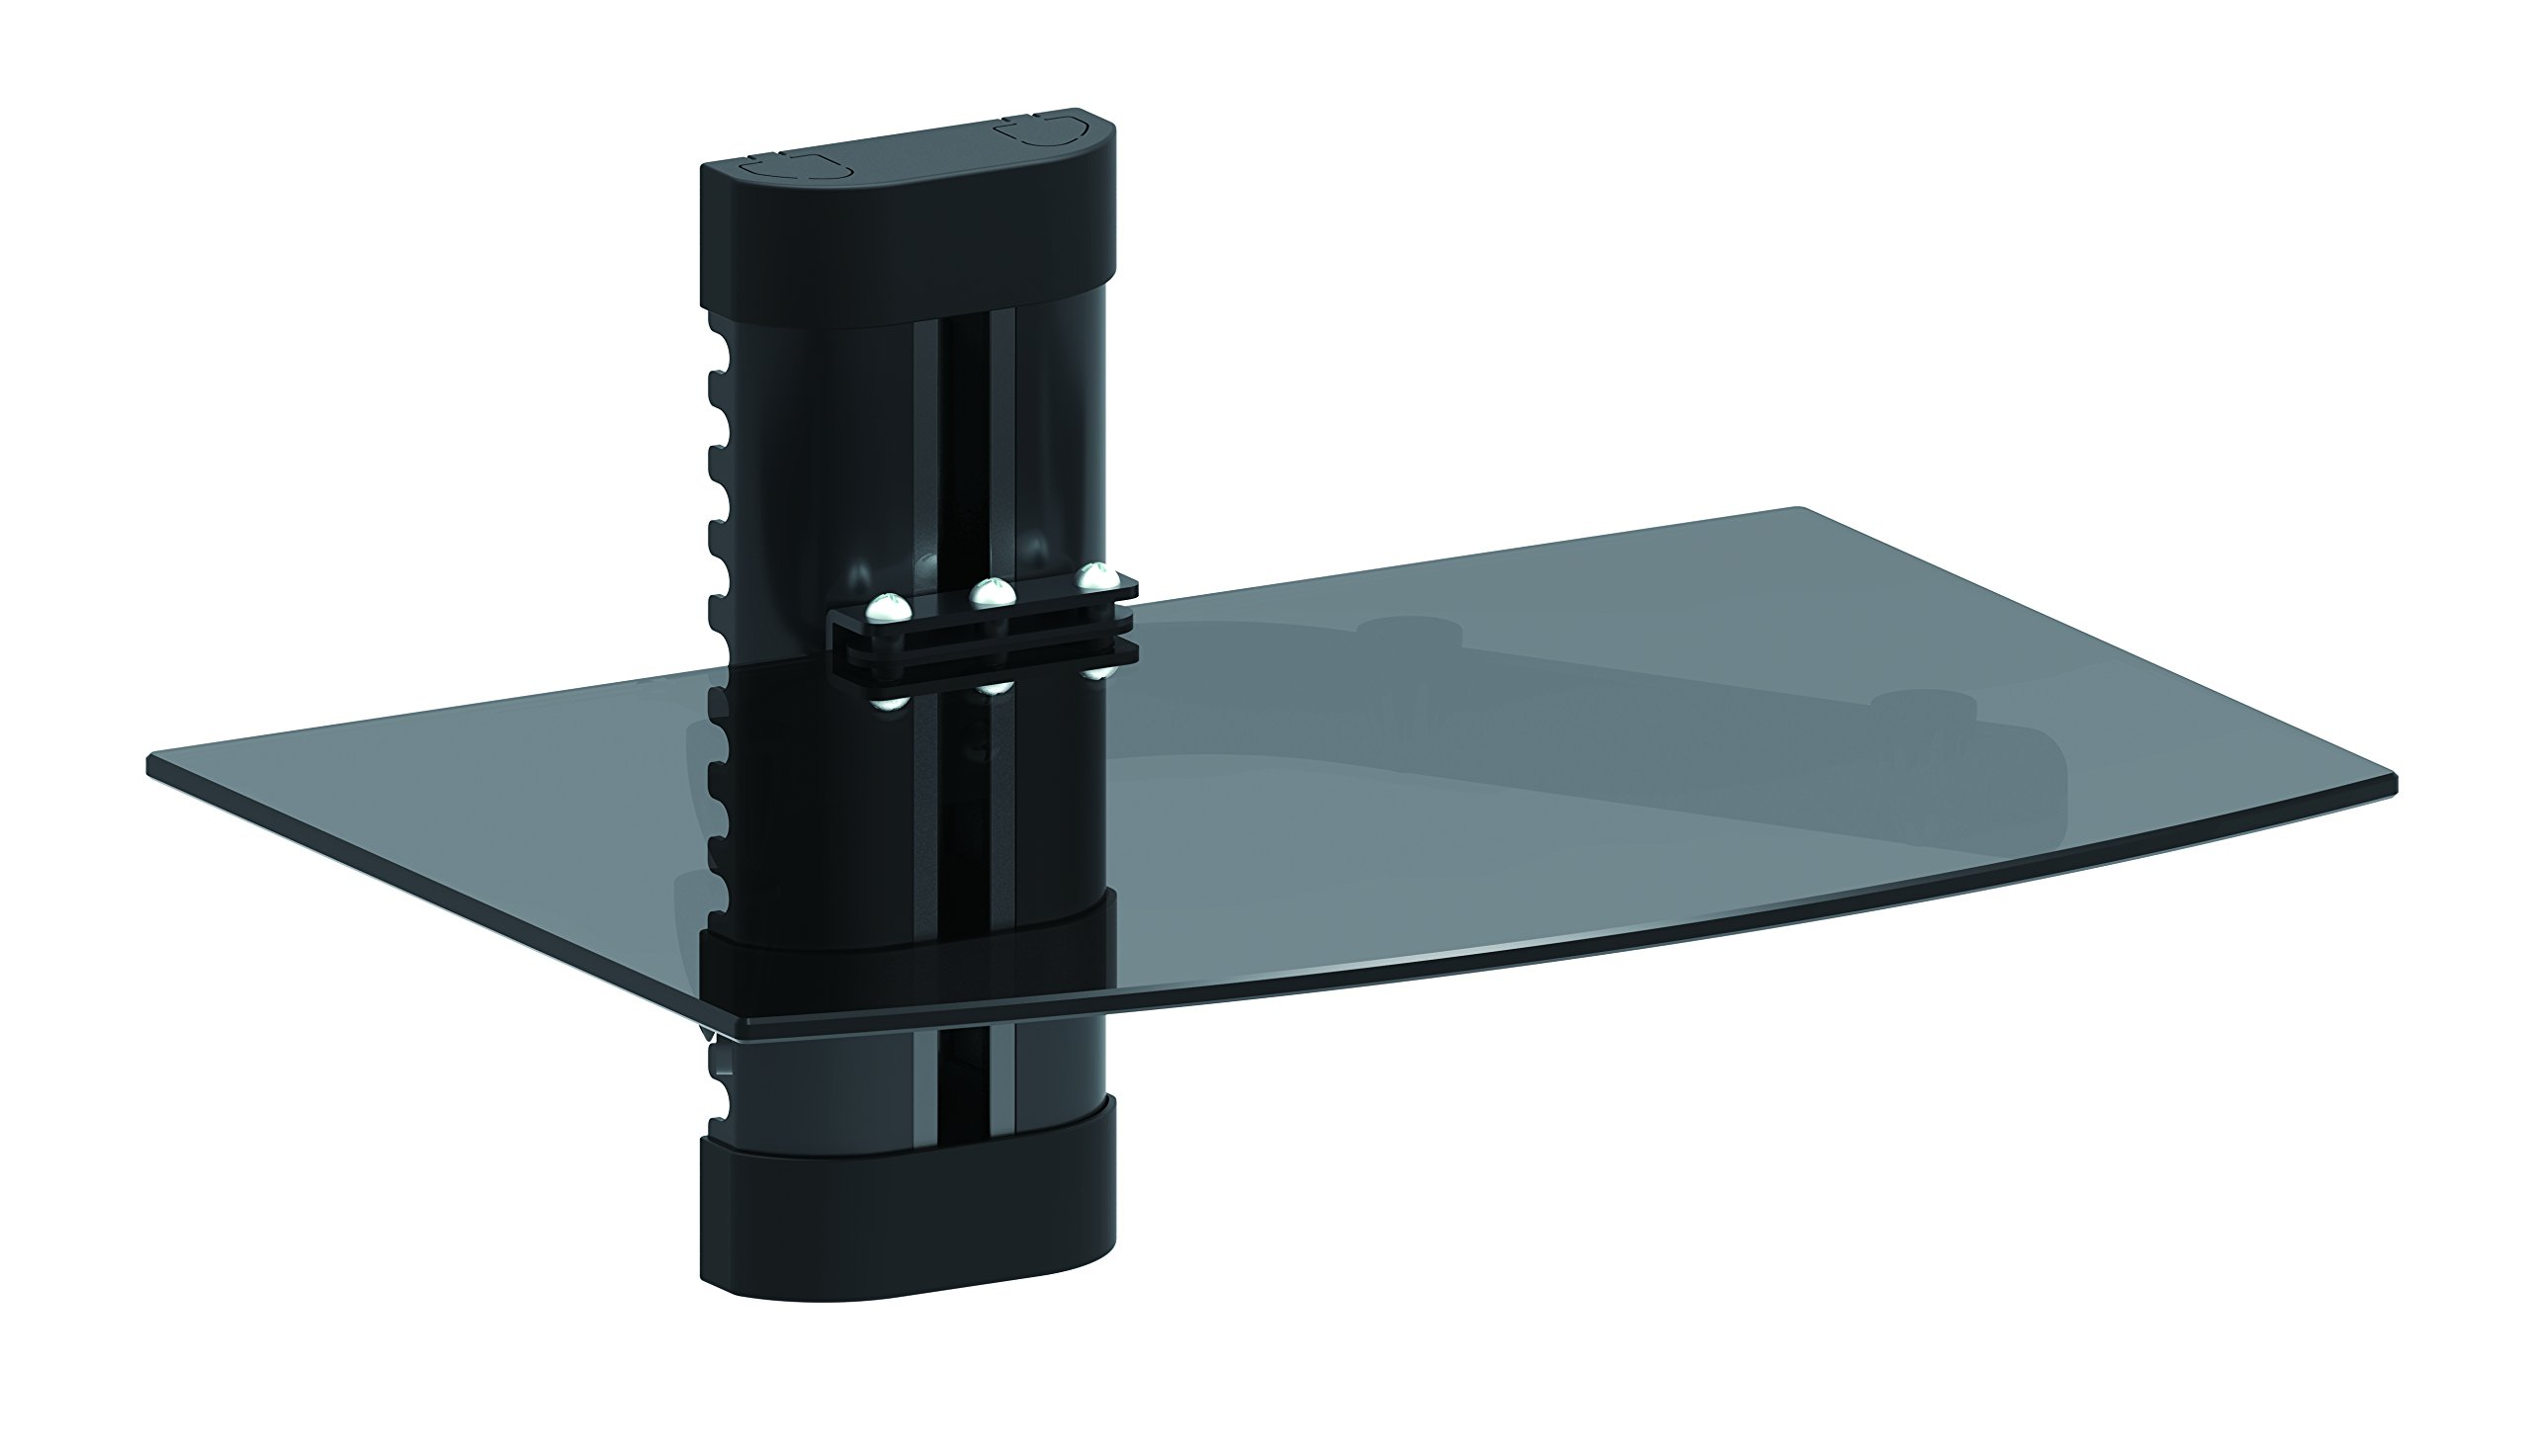 Wall Mount Shelf For Media Players with Tempered Glass- Holds up to 17.6 lbs